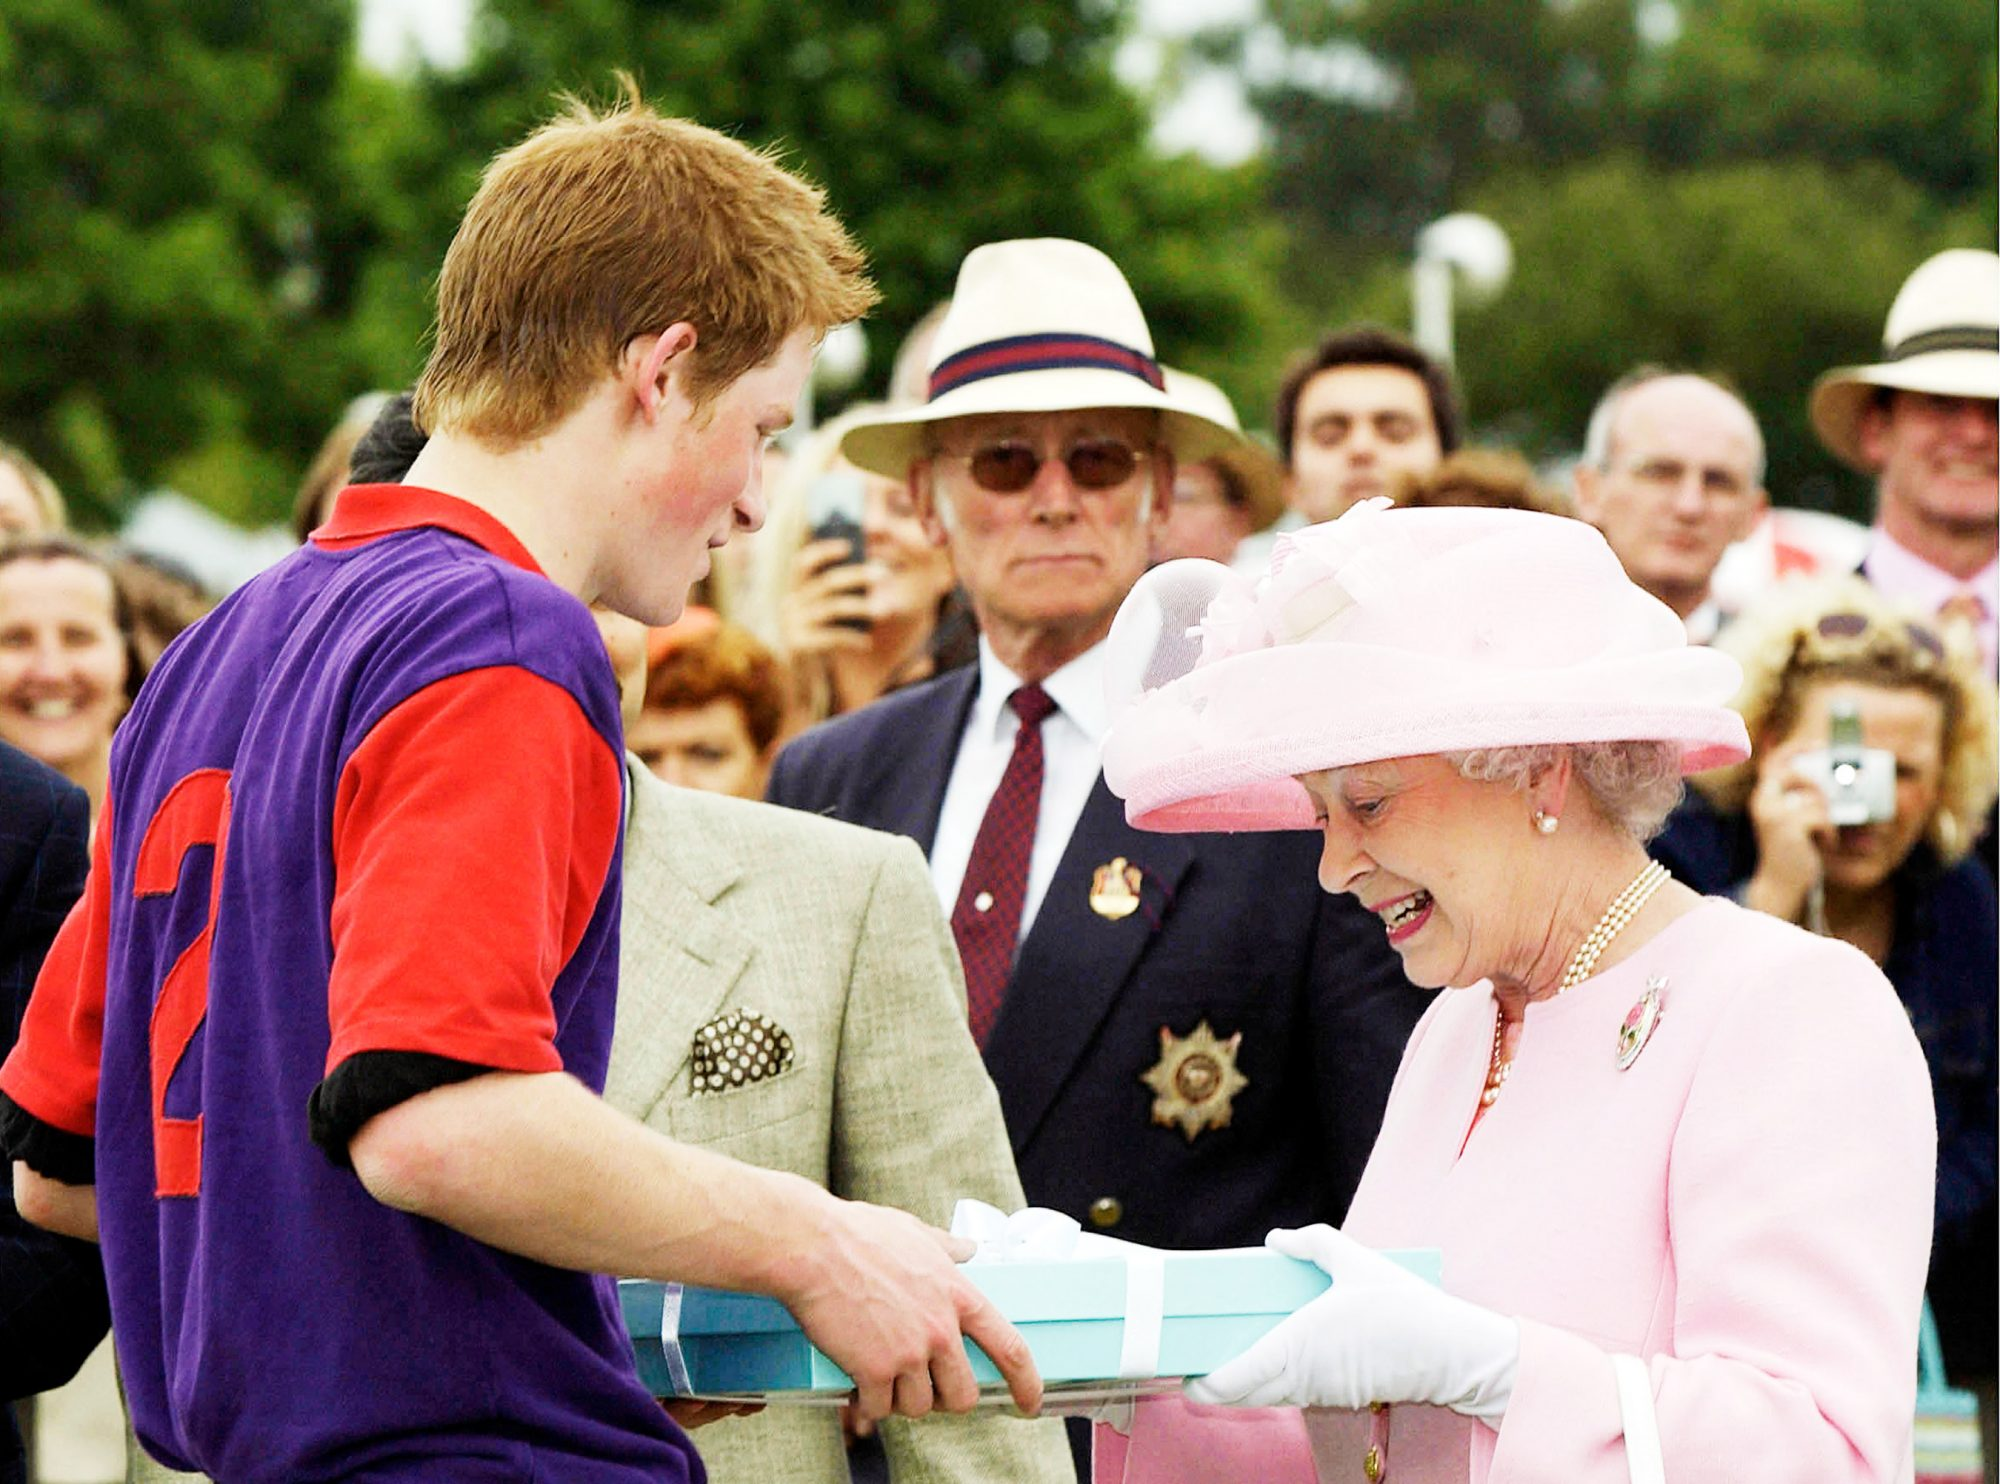 GBR: Queen Elizabeth II makes a presentation to Prince Harry at Royal Ascot